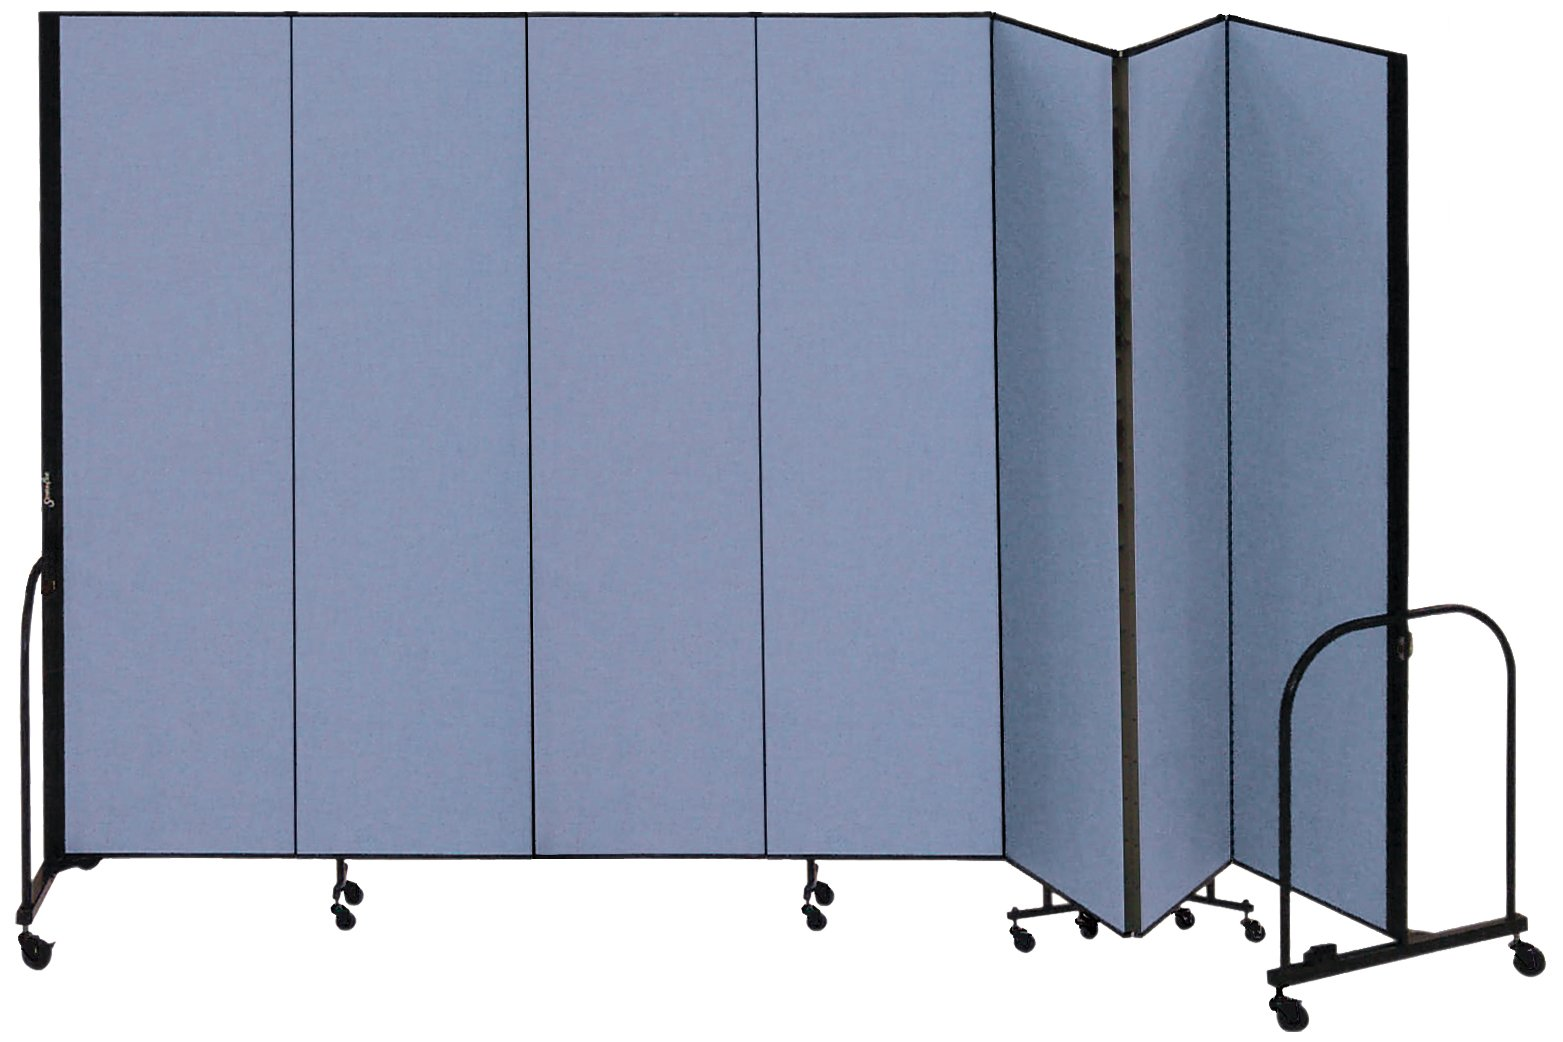 Screenflex Commercial Portable Room Divider (CFSL747-DB) 7 Feet 4 Inches High by 13 Feet 1 Inches Long, Designer Lake Fabric